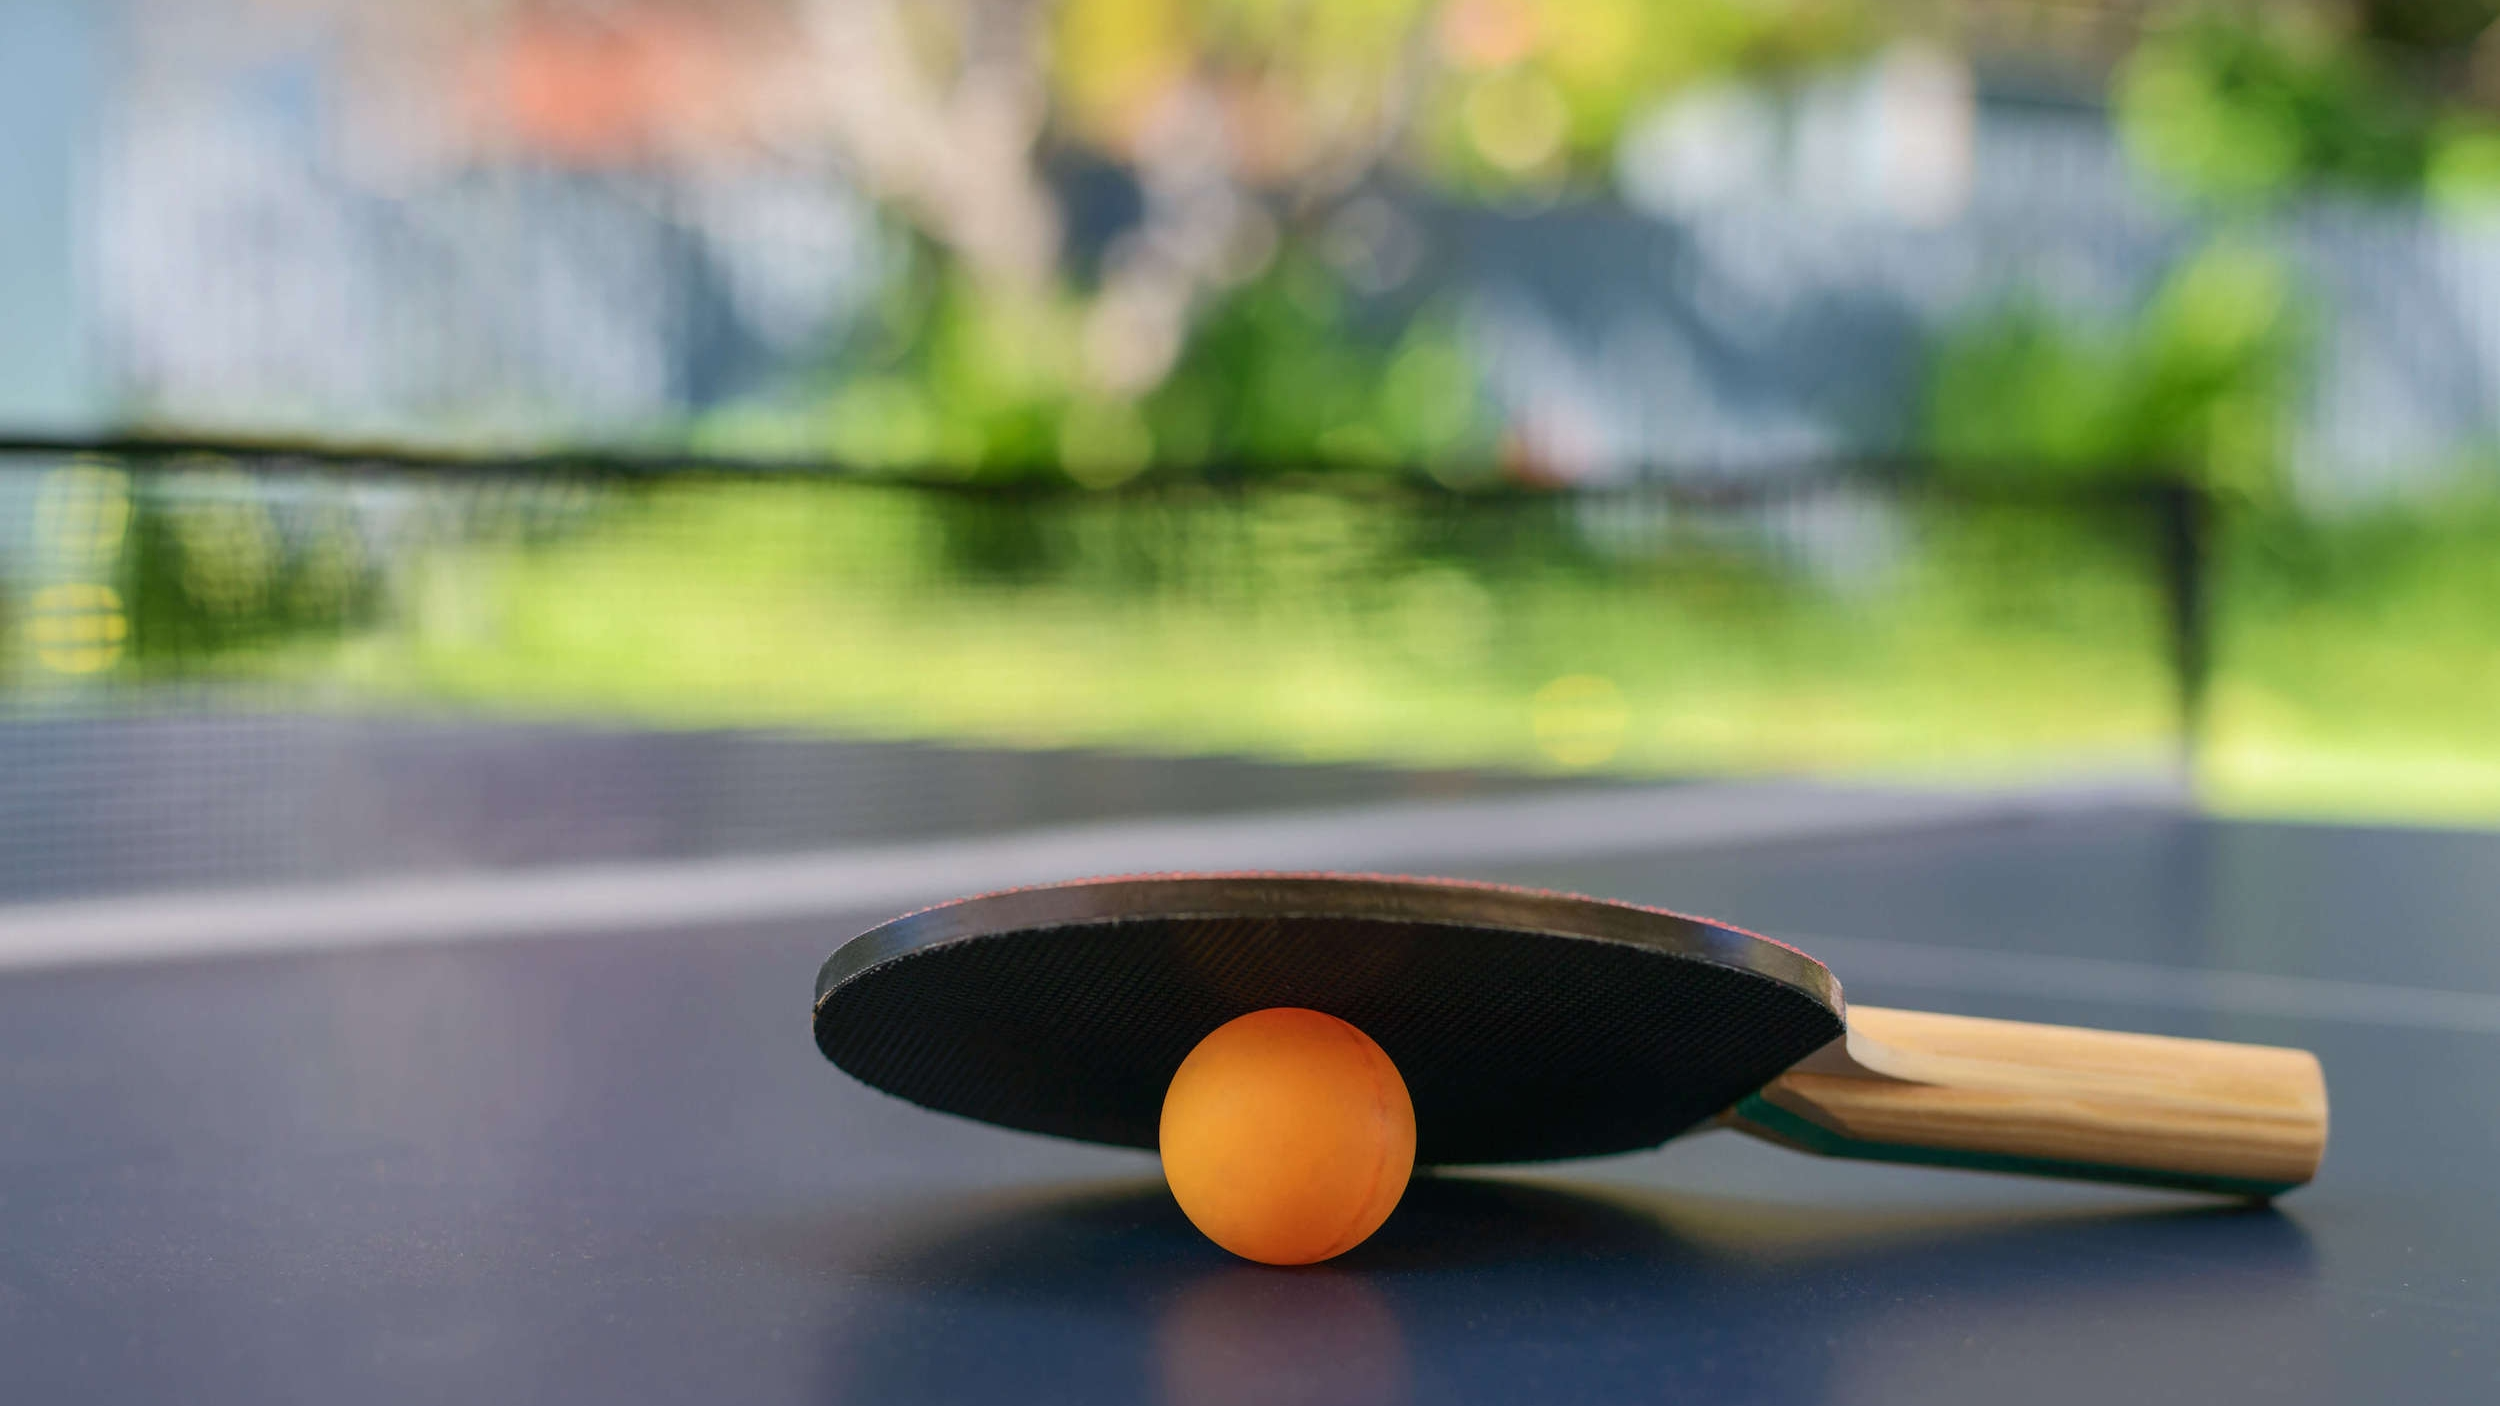 Table Tennis - Fancy a game of ping pong?